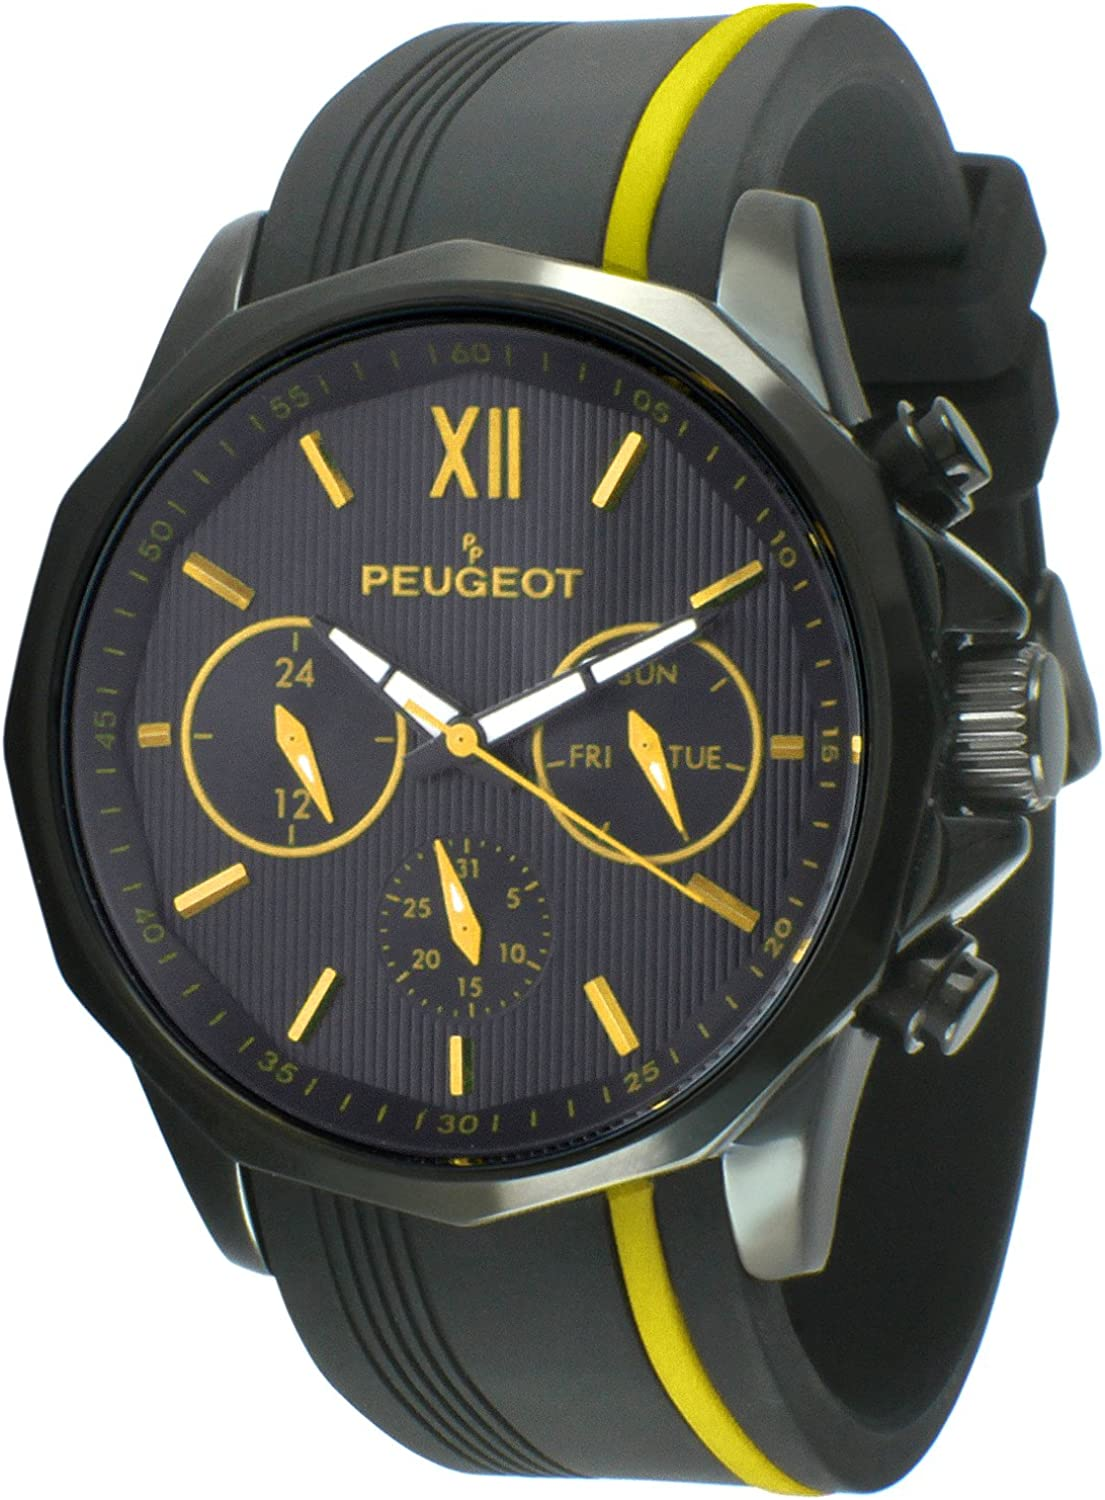 Peugeot Men Big Face Chronograph Sport Watch – Round with Day, Date. 24 Hours Sub Dial Windows Silicone Strap